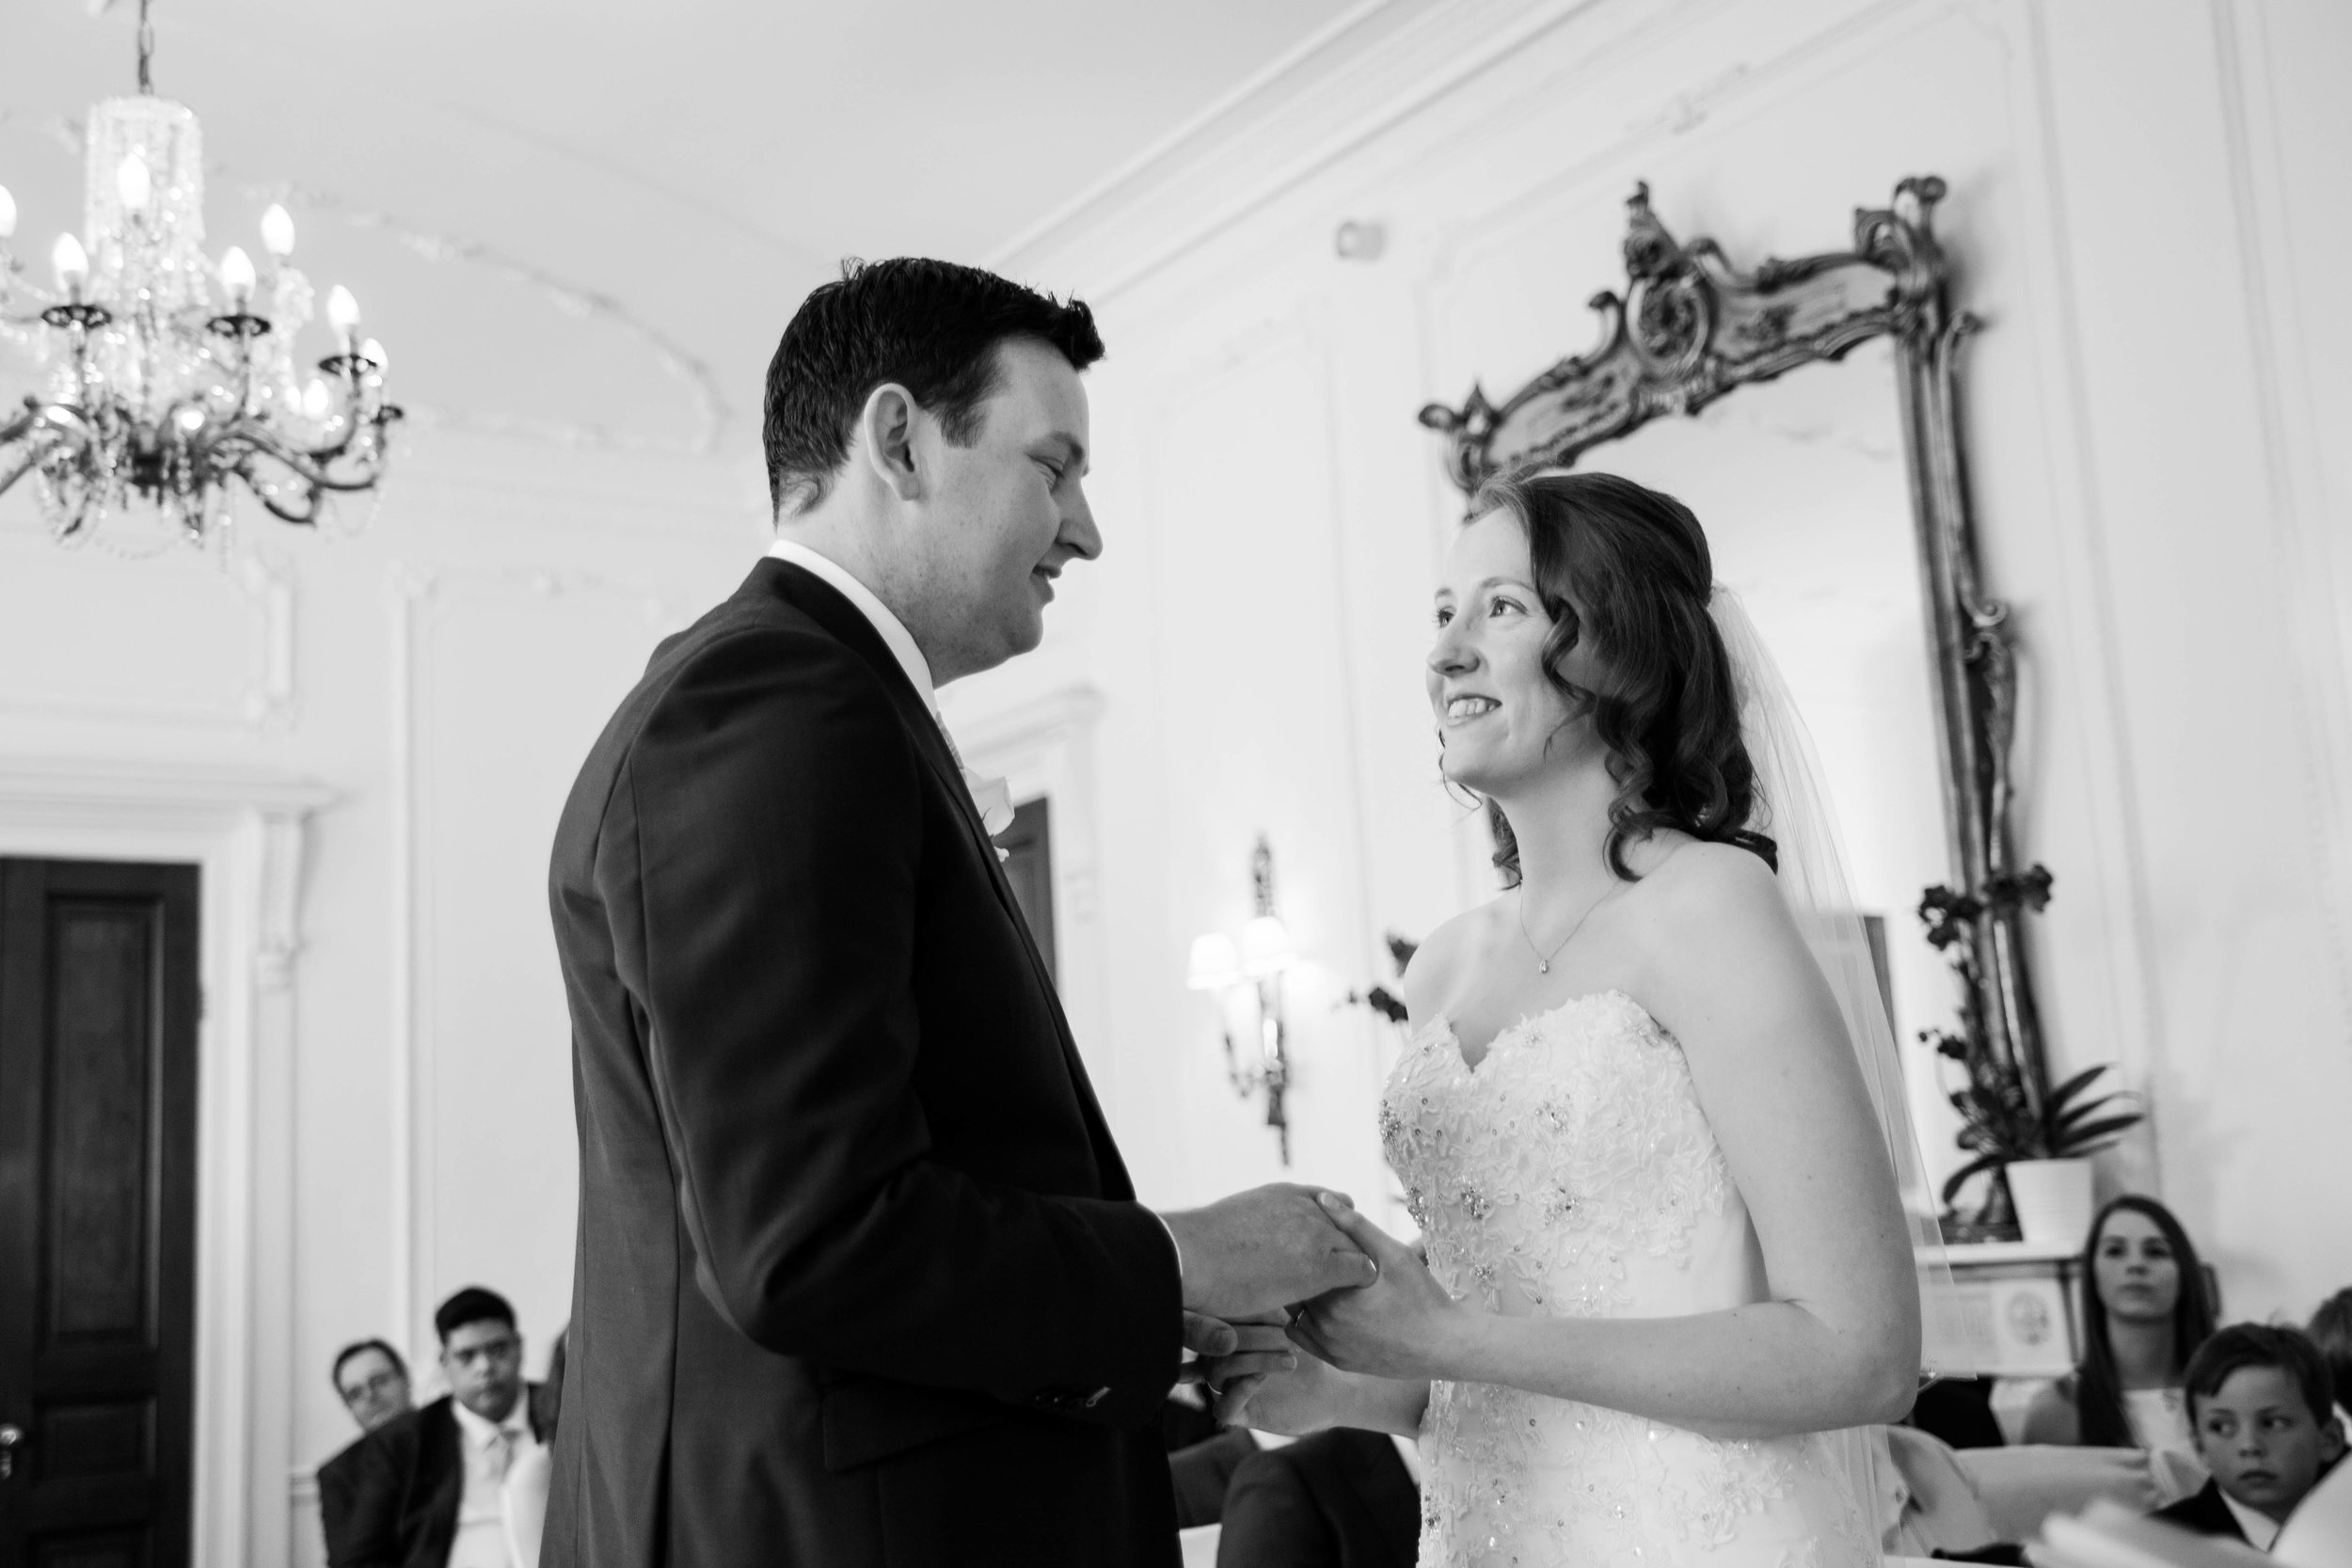 NLPhotography_Taplow_House-Wedding_Photographer_Emily&Alan_BnW-282.jpg